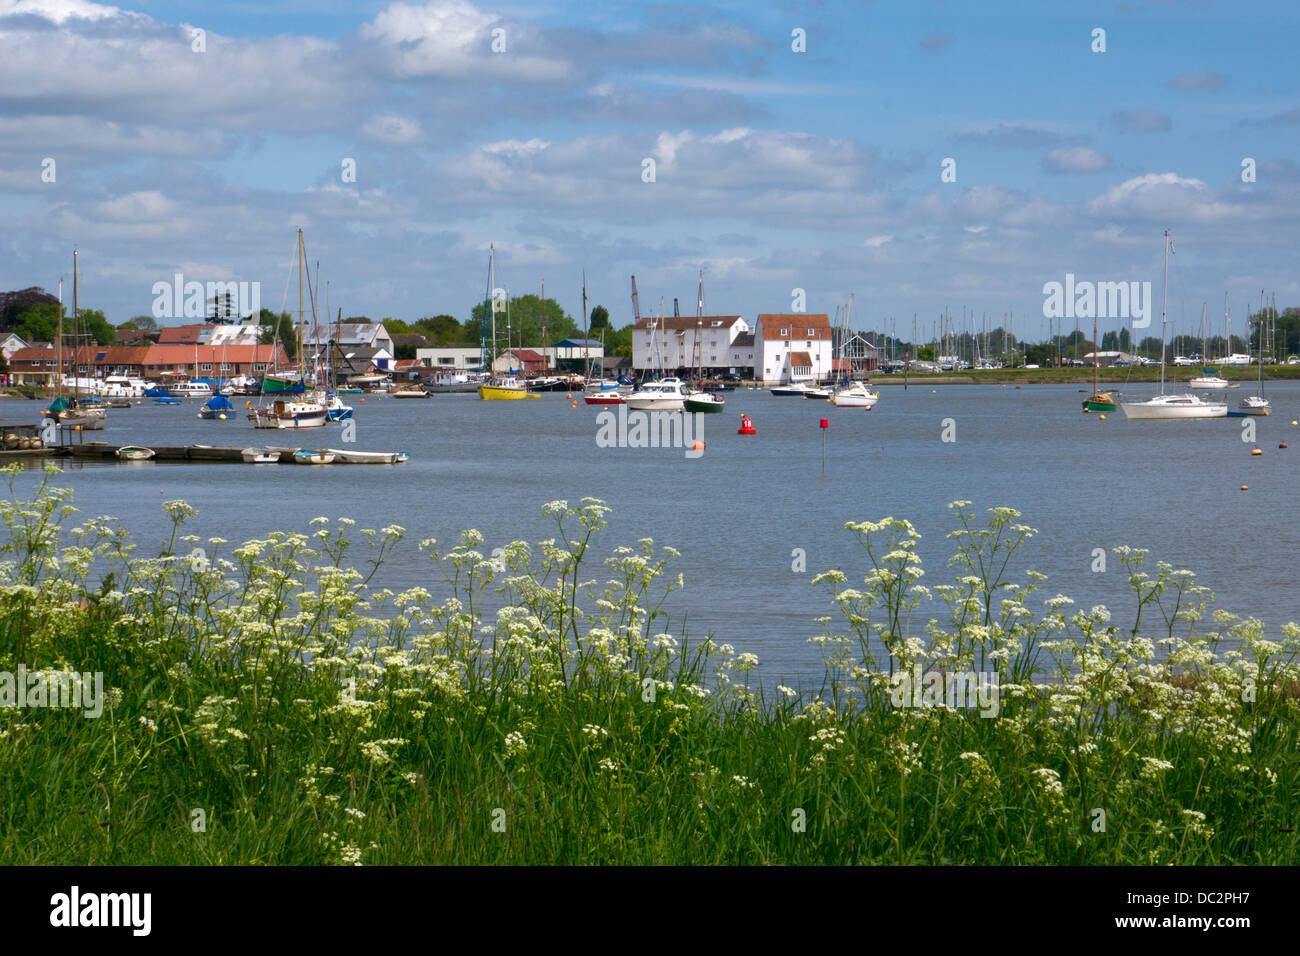 Woodbridge, River Deben, Suffolk, East Anglia, England - Stock Image